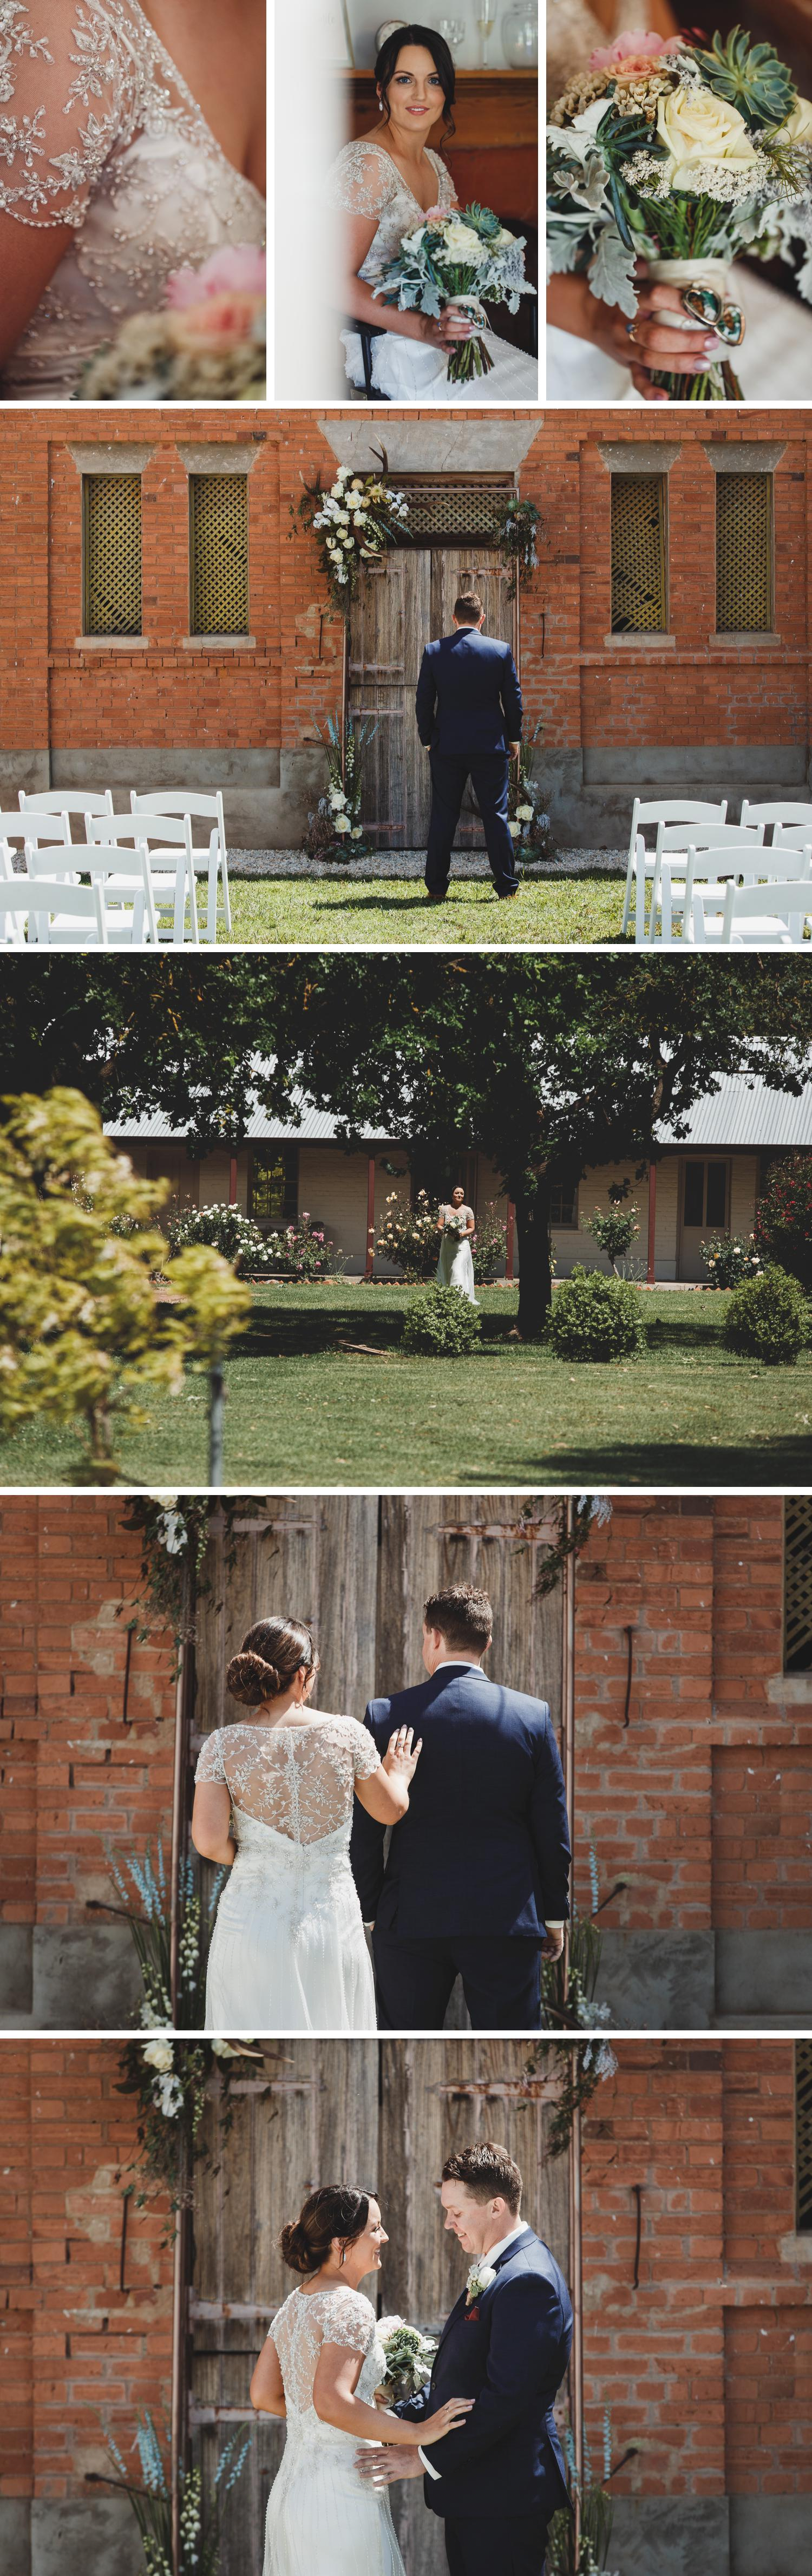 Mewburn Park Clear Marquee Farm Wedding by Gippsland Photographer Danae Studios